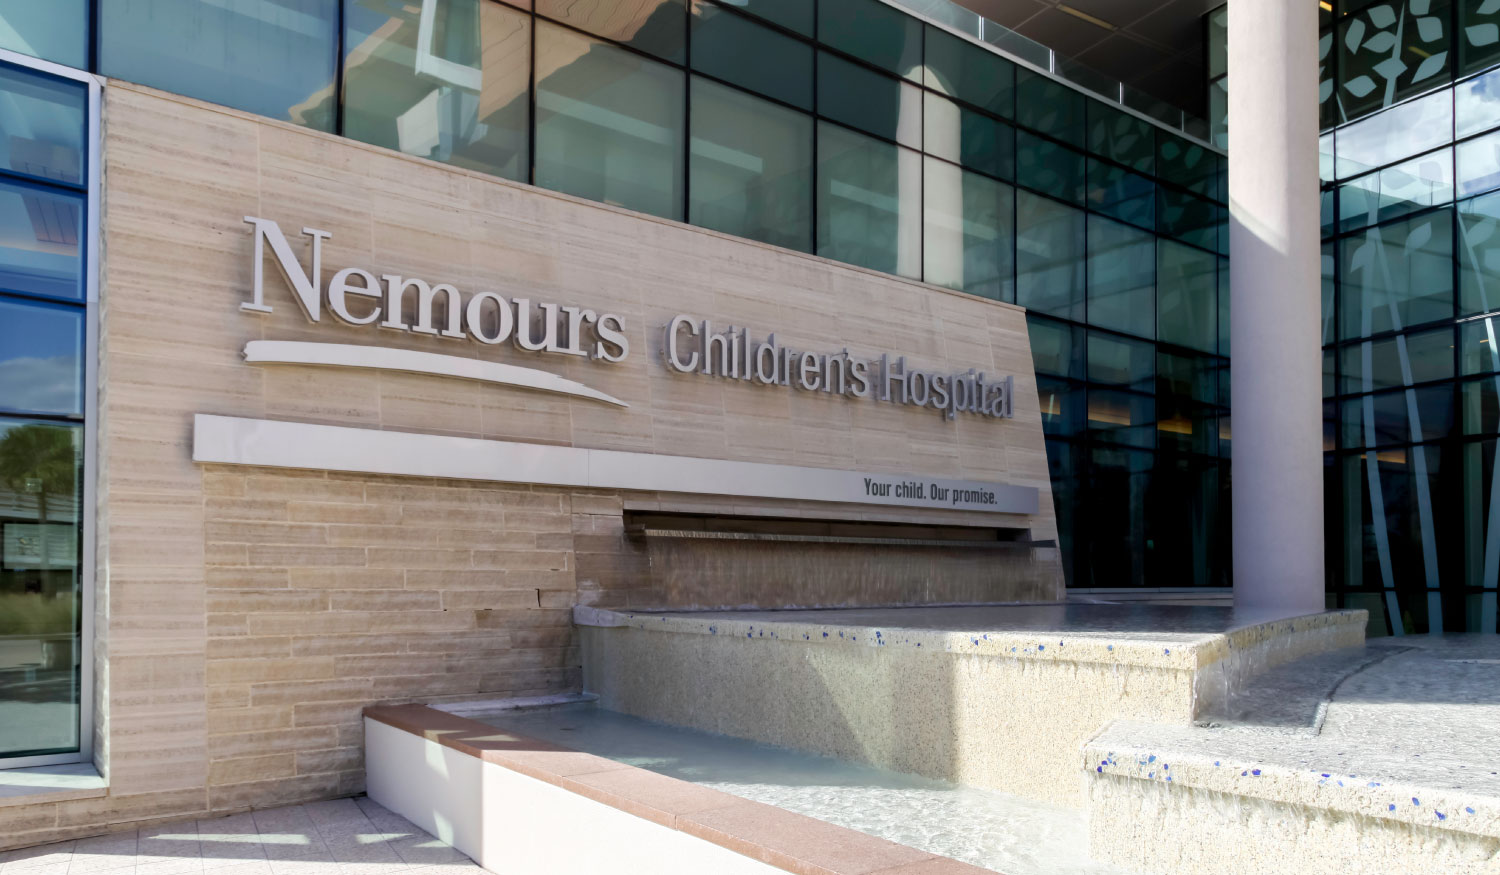 The Nemours Children's Hospital Entrance in Orland, Florida